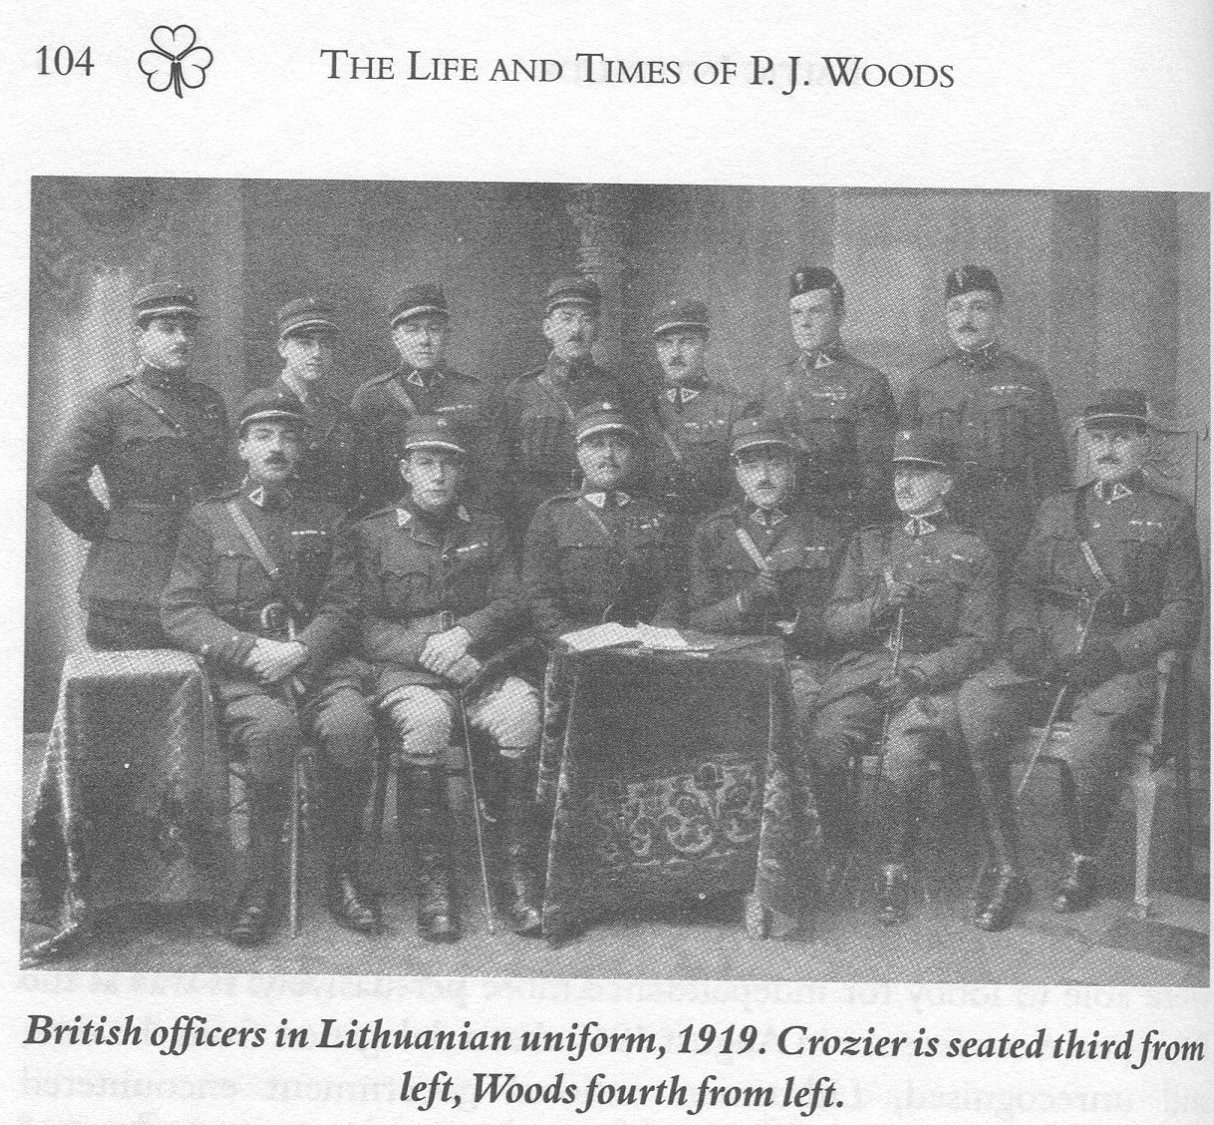 Lithuanian officers